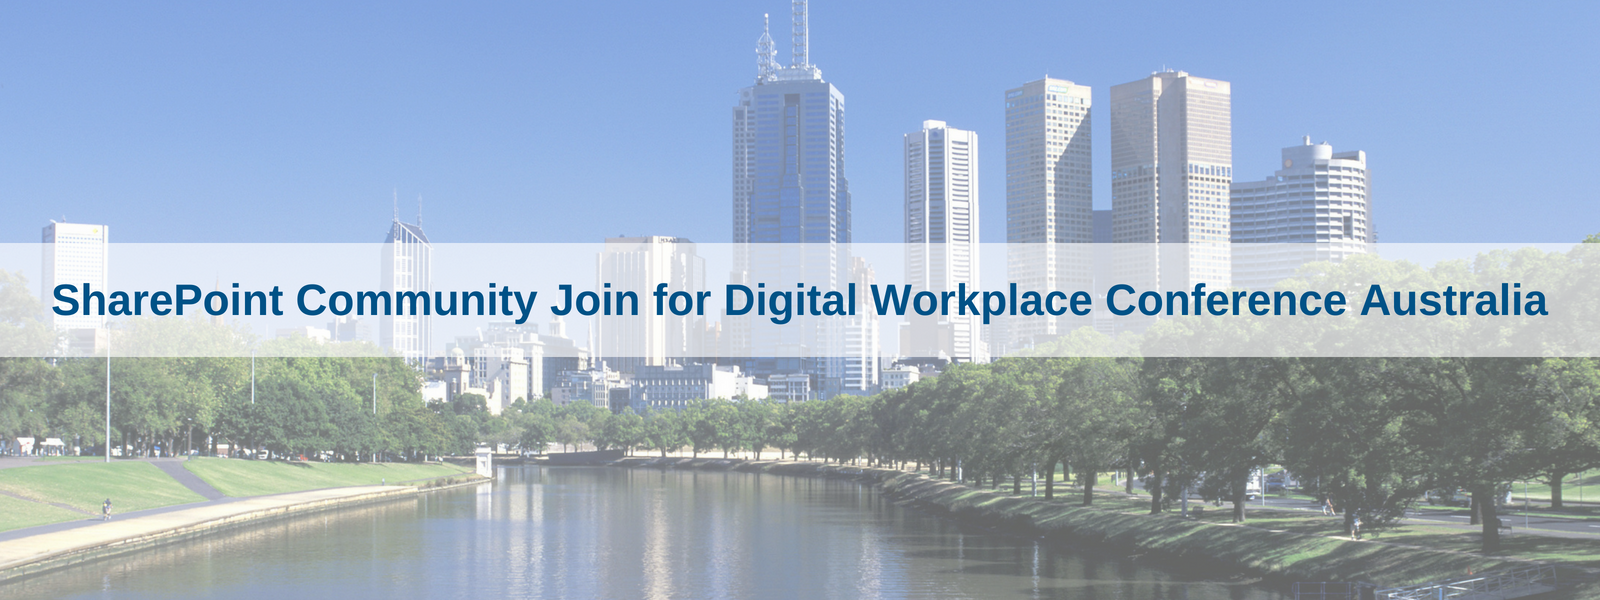 SharePoint Community Join for DWC Australia